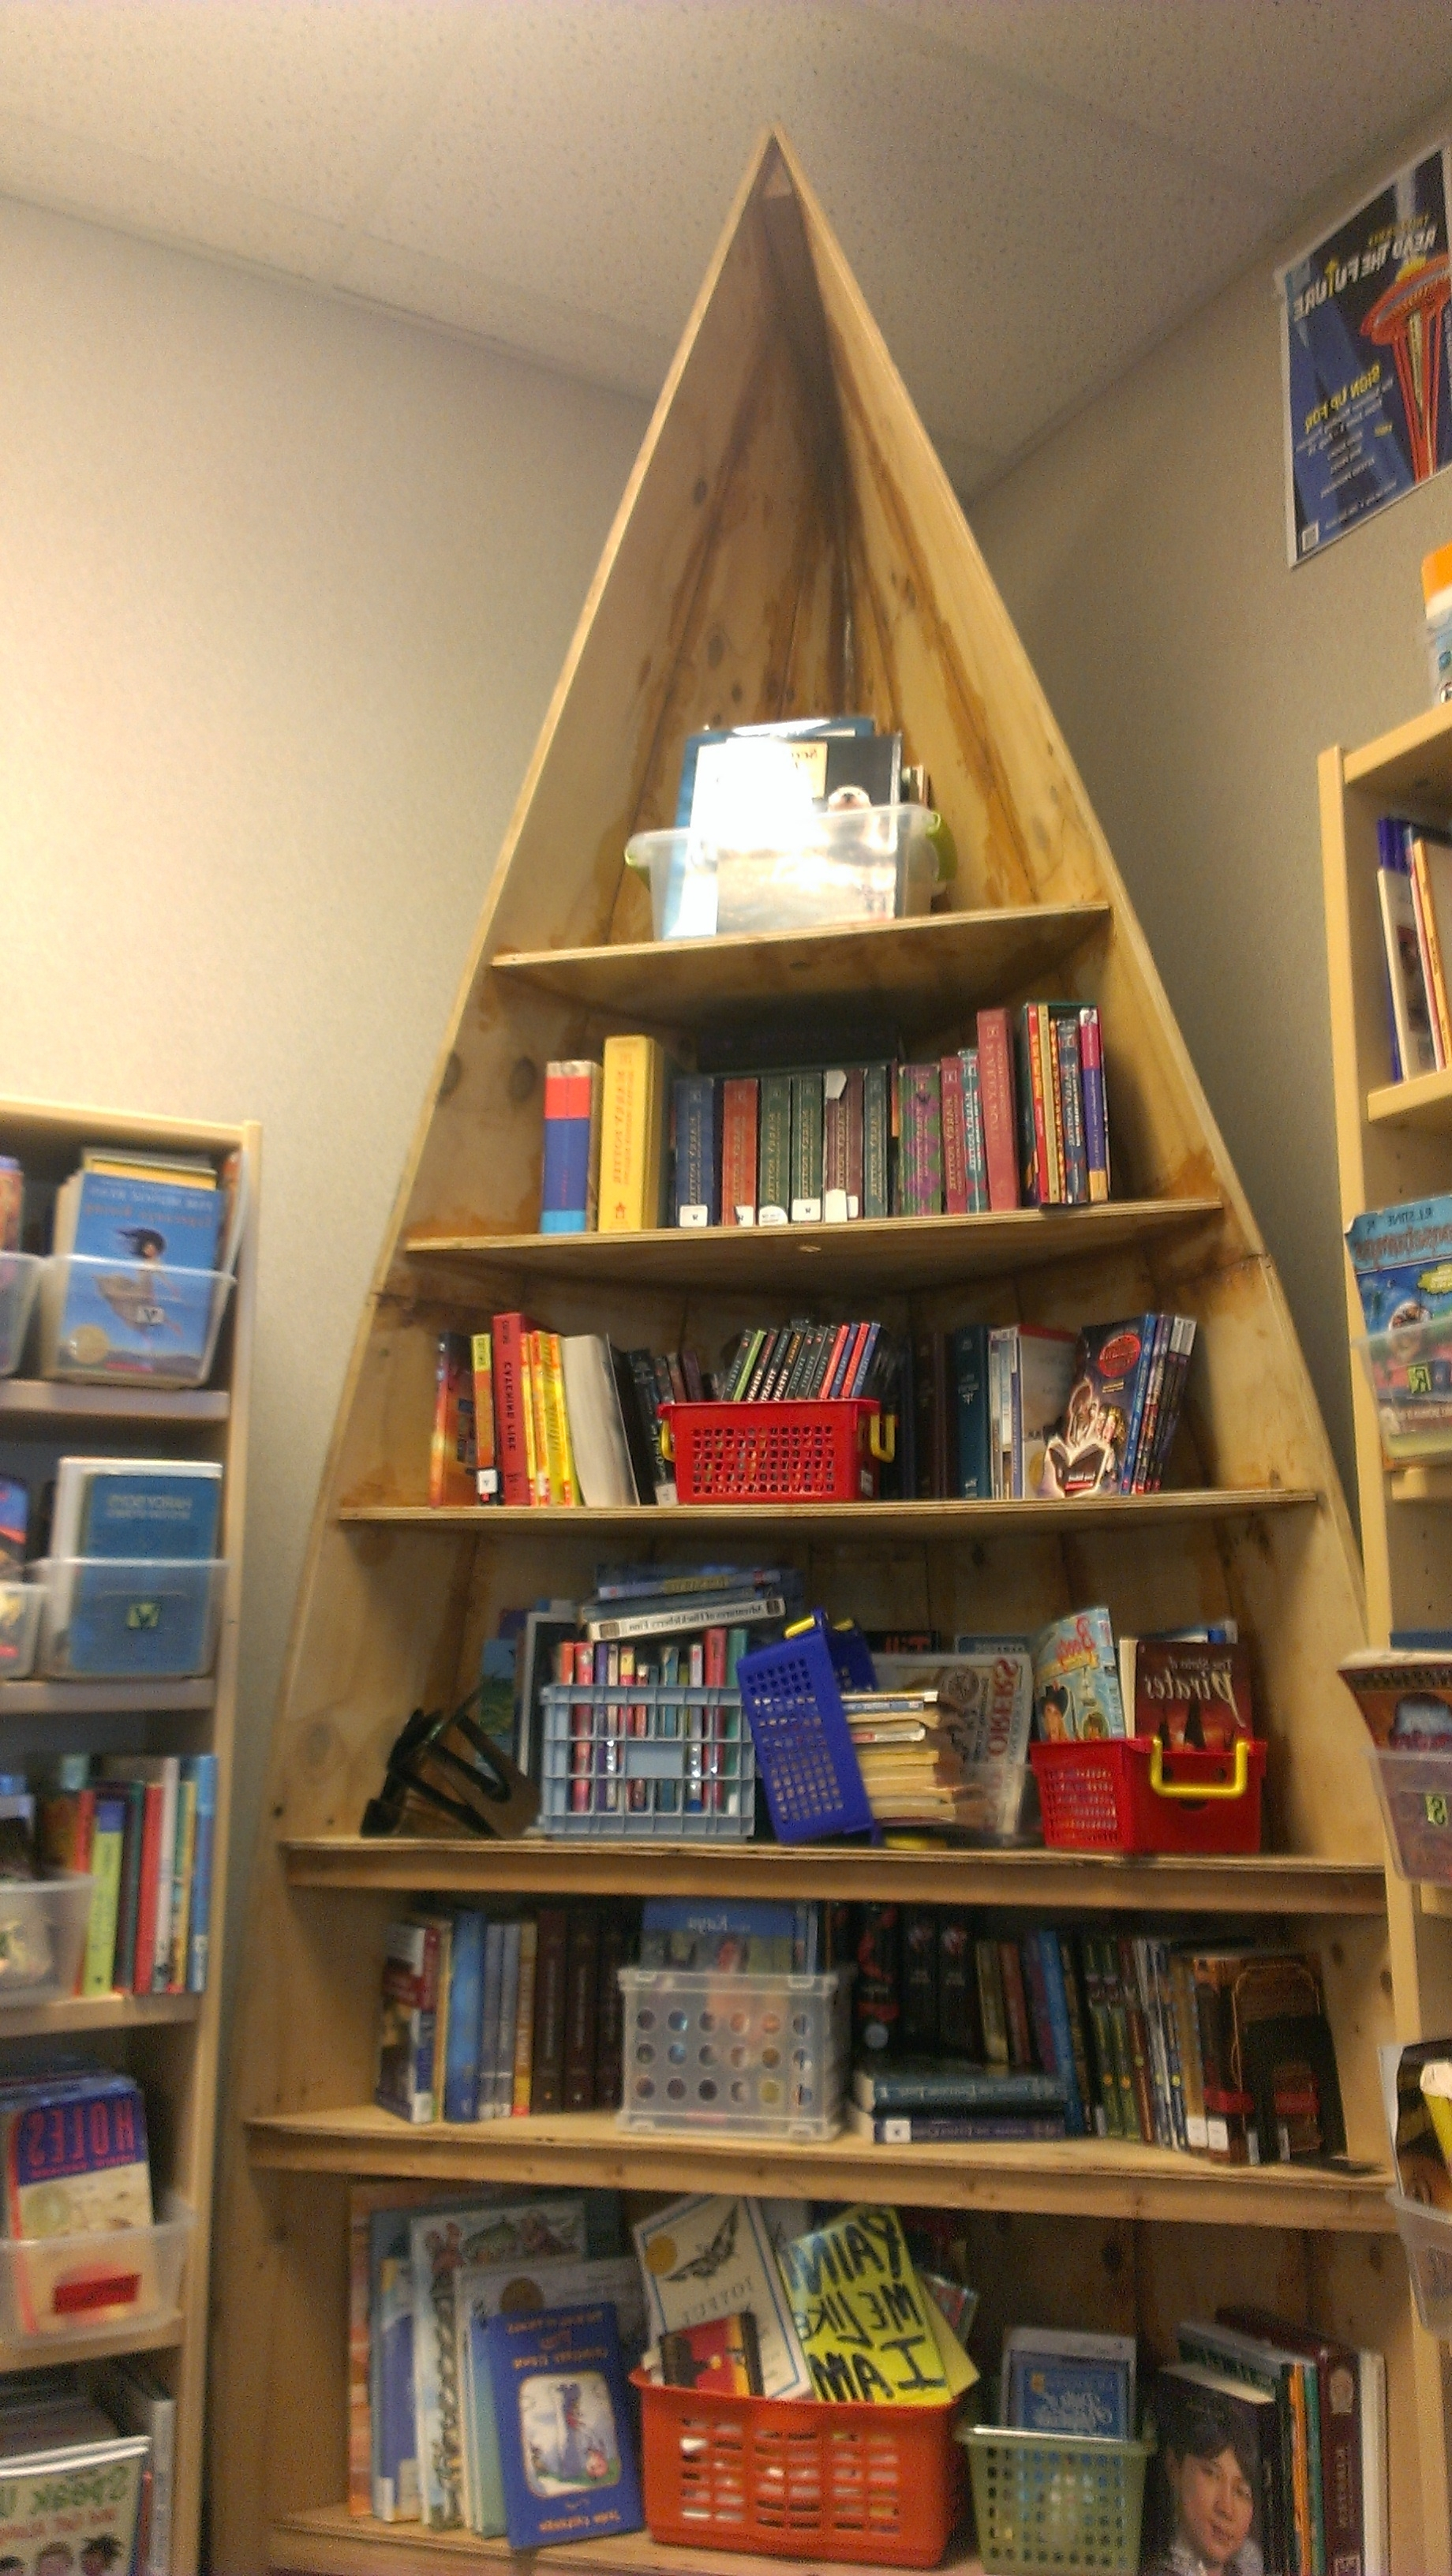 Widely Used Boat Shaped Bookcases In Diy Boat Bookshelf In A Classroom At Pathfinder K 8, A Seattle (View 15 of 15)